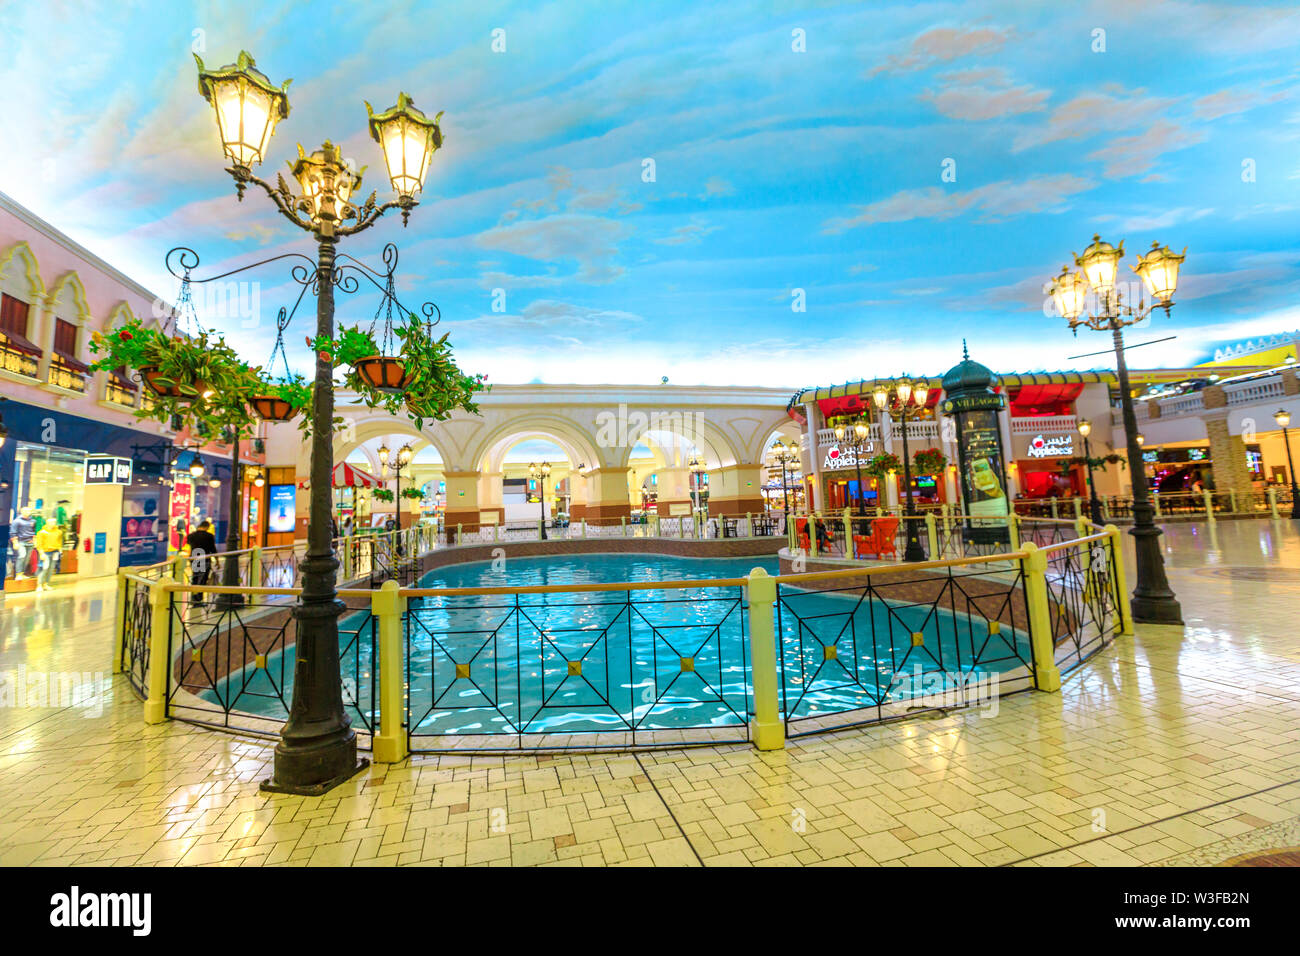 Doha, Qatar - February 21, 2019: vintage lamps and venice canal in Villaggio Mall, a shopping center in Aspire Zone. Luxury brands, expensive stores a - Stock Image